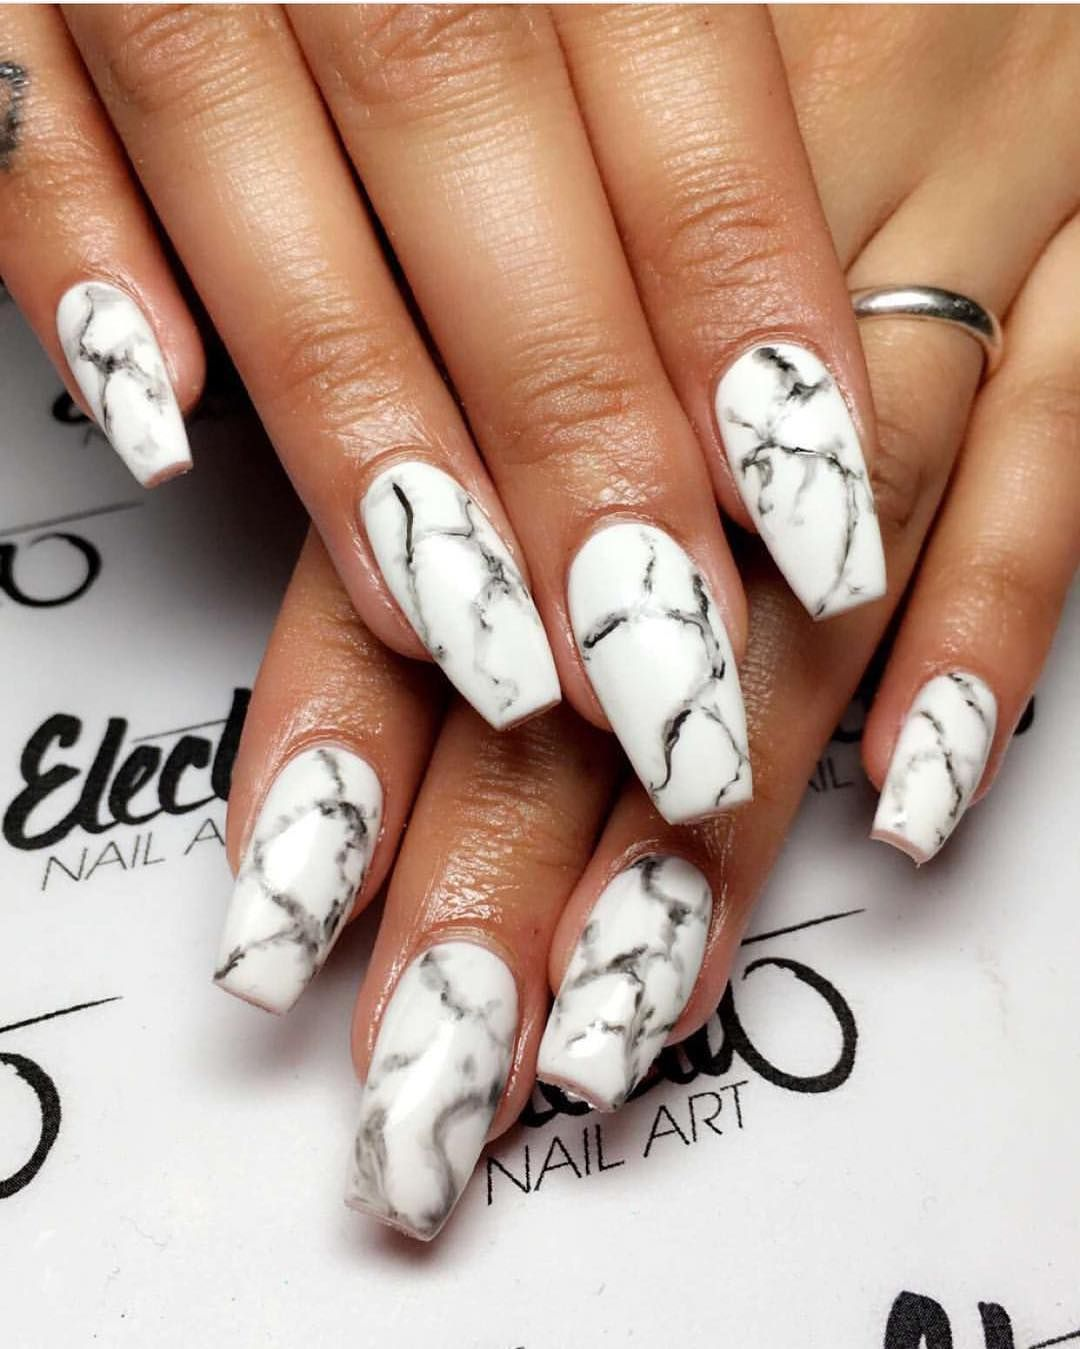 Pin by Shameka Bolton on Nails that slay... | Pinterest | Marbled nails